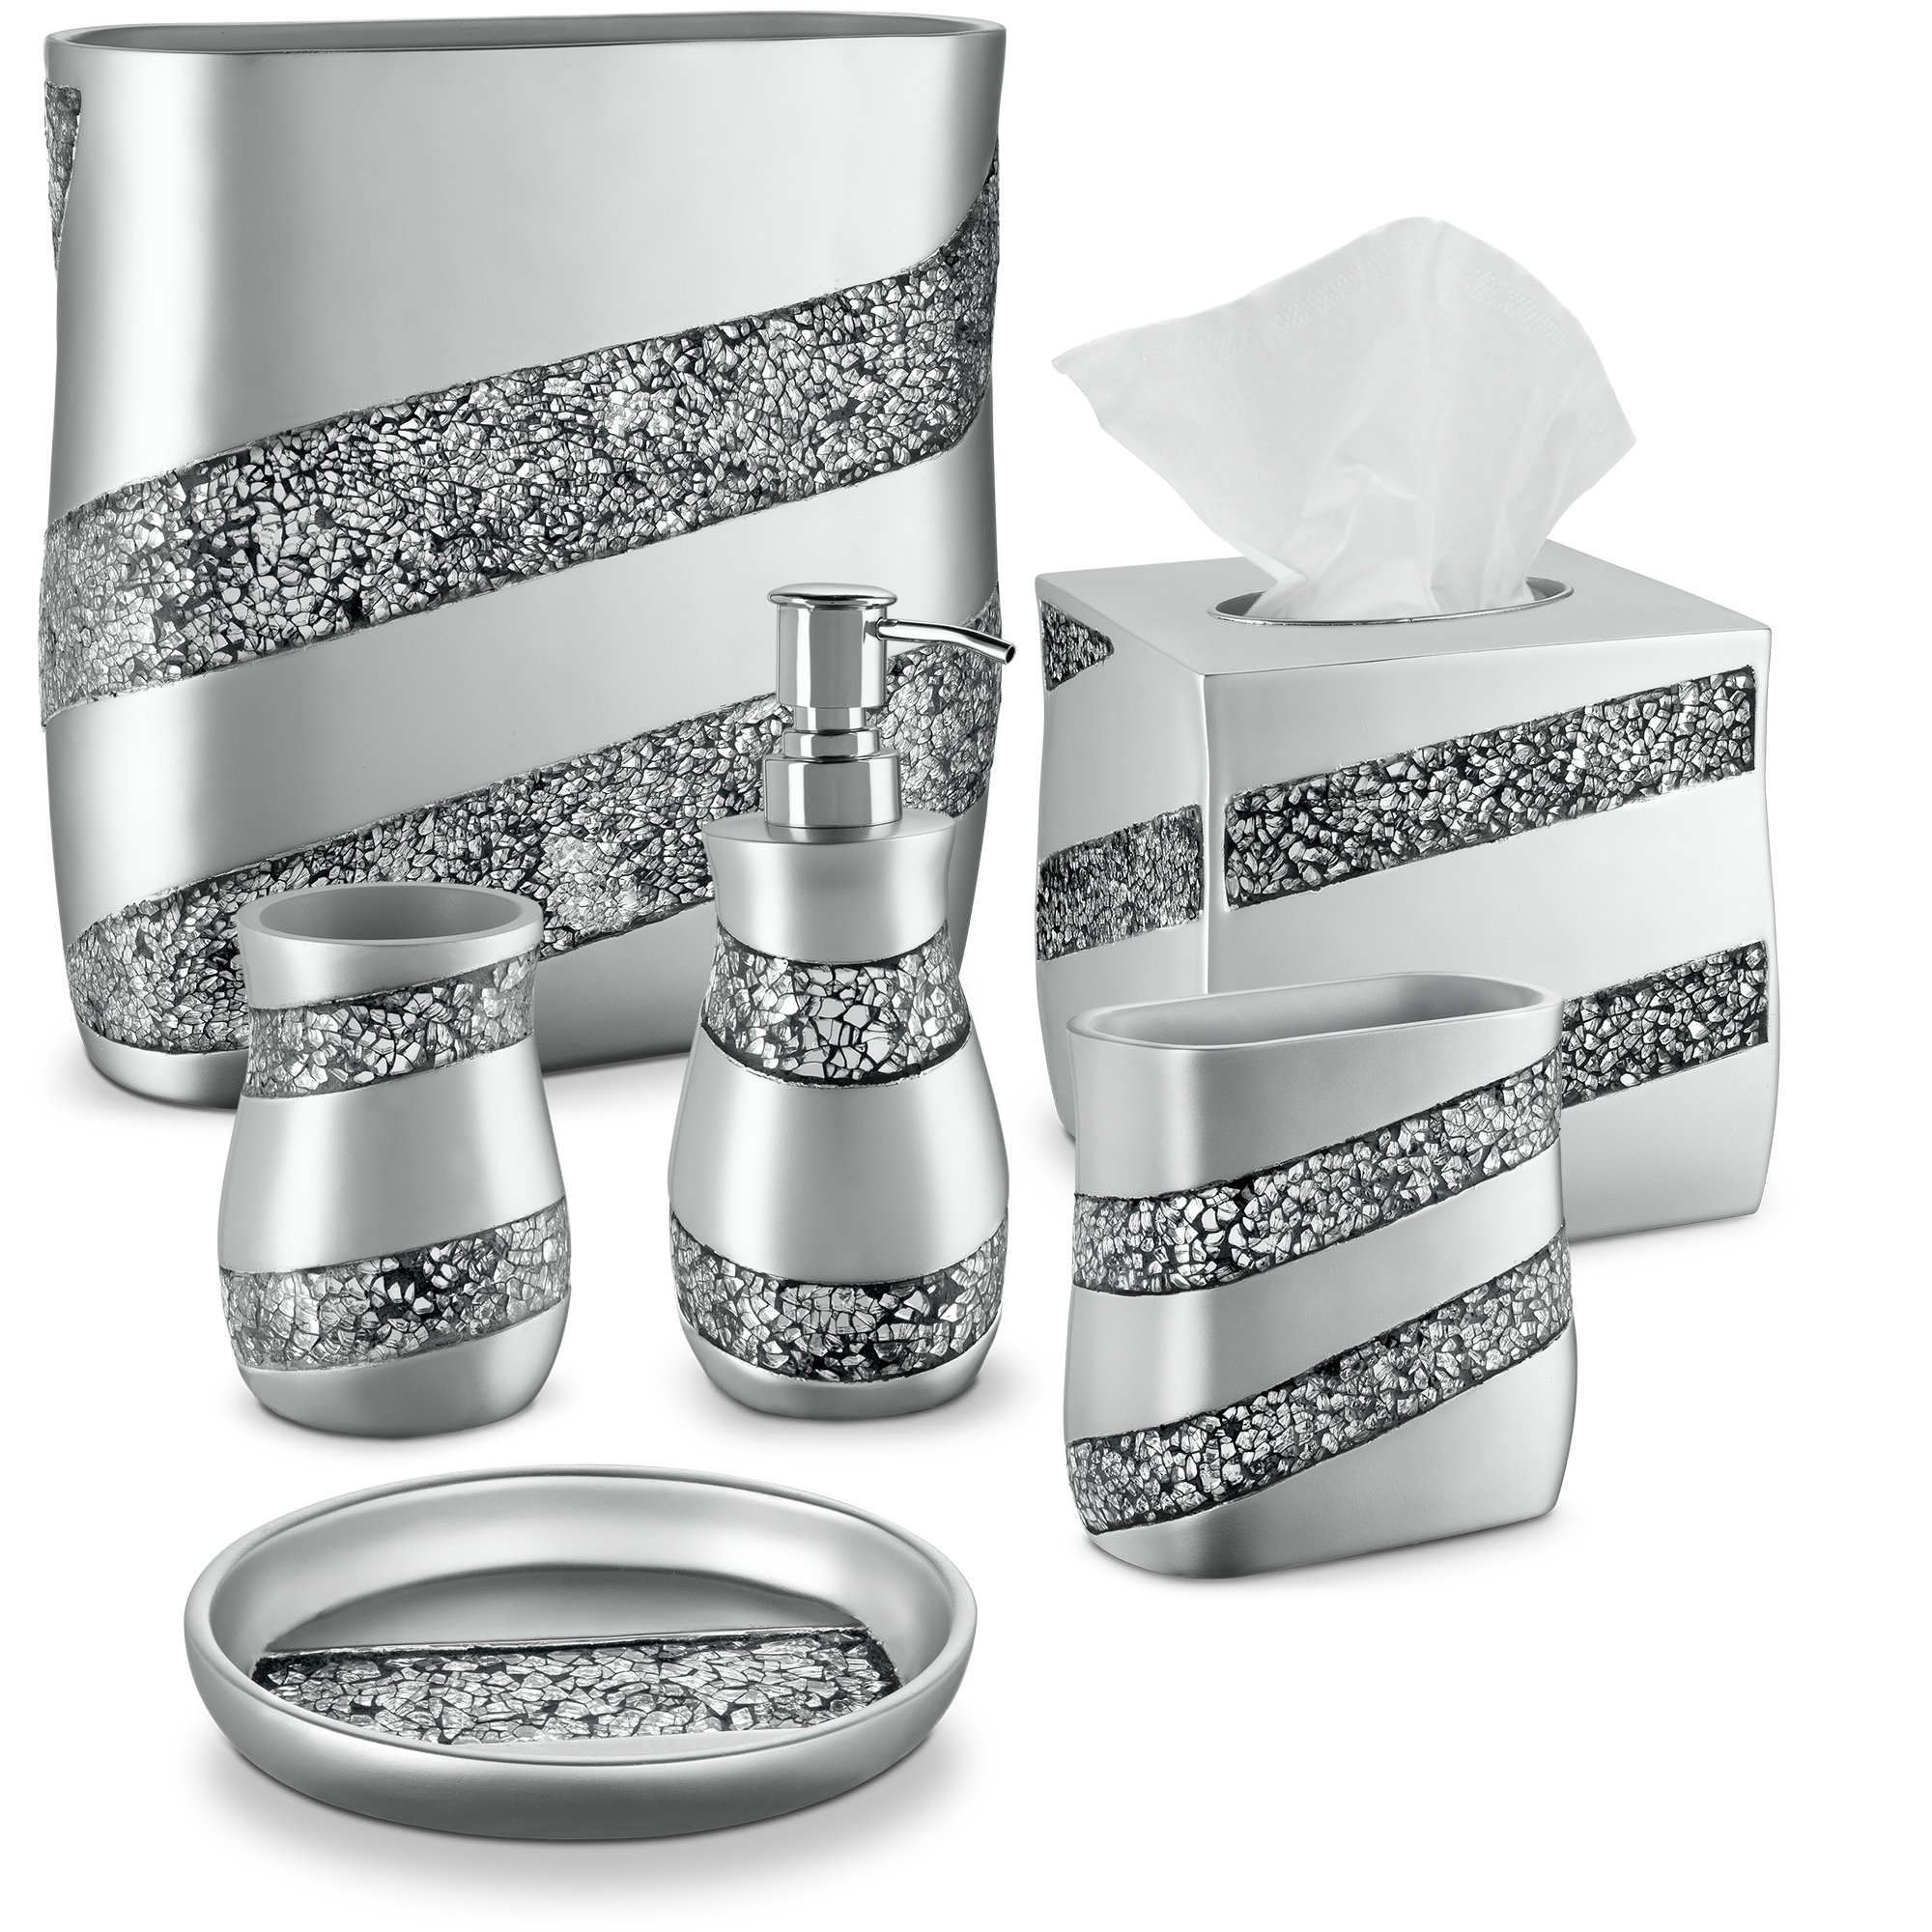 dwellza silver mosaic bathroom accessories set  6 piece